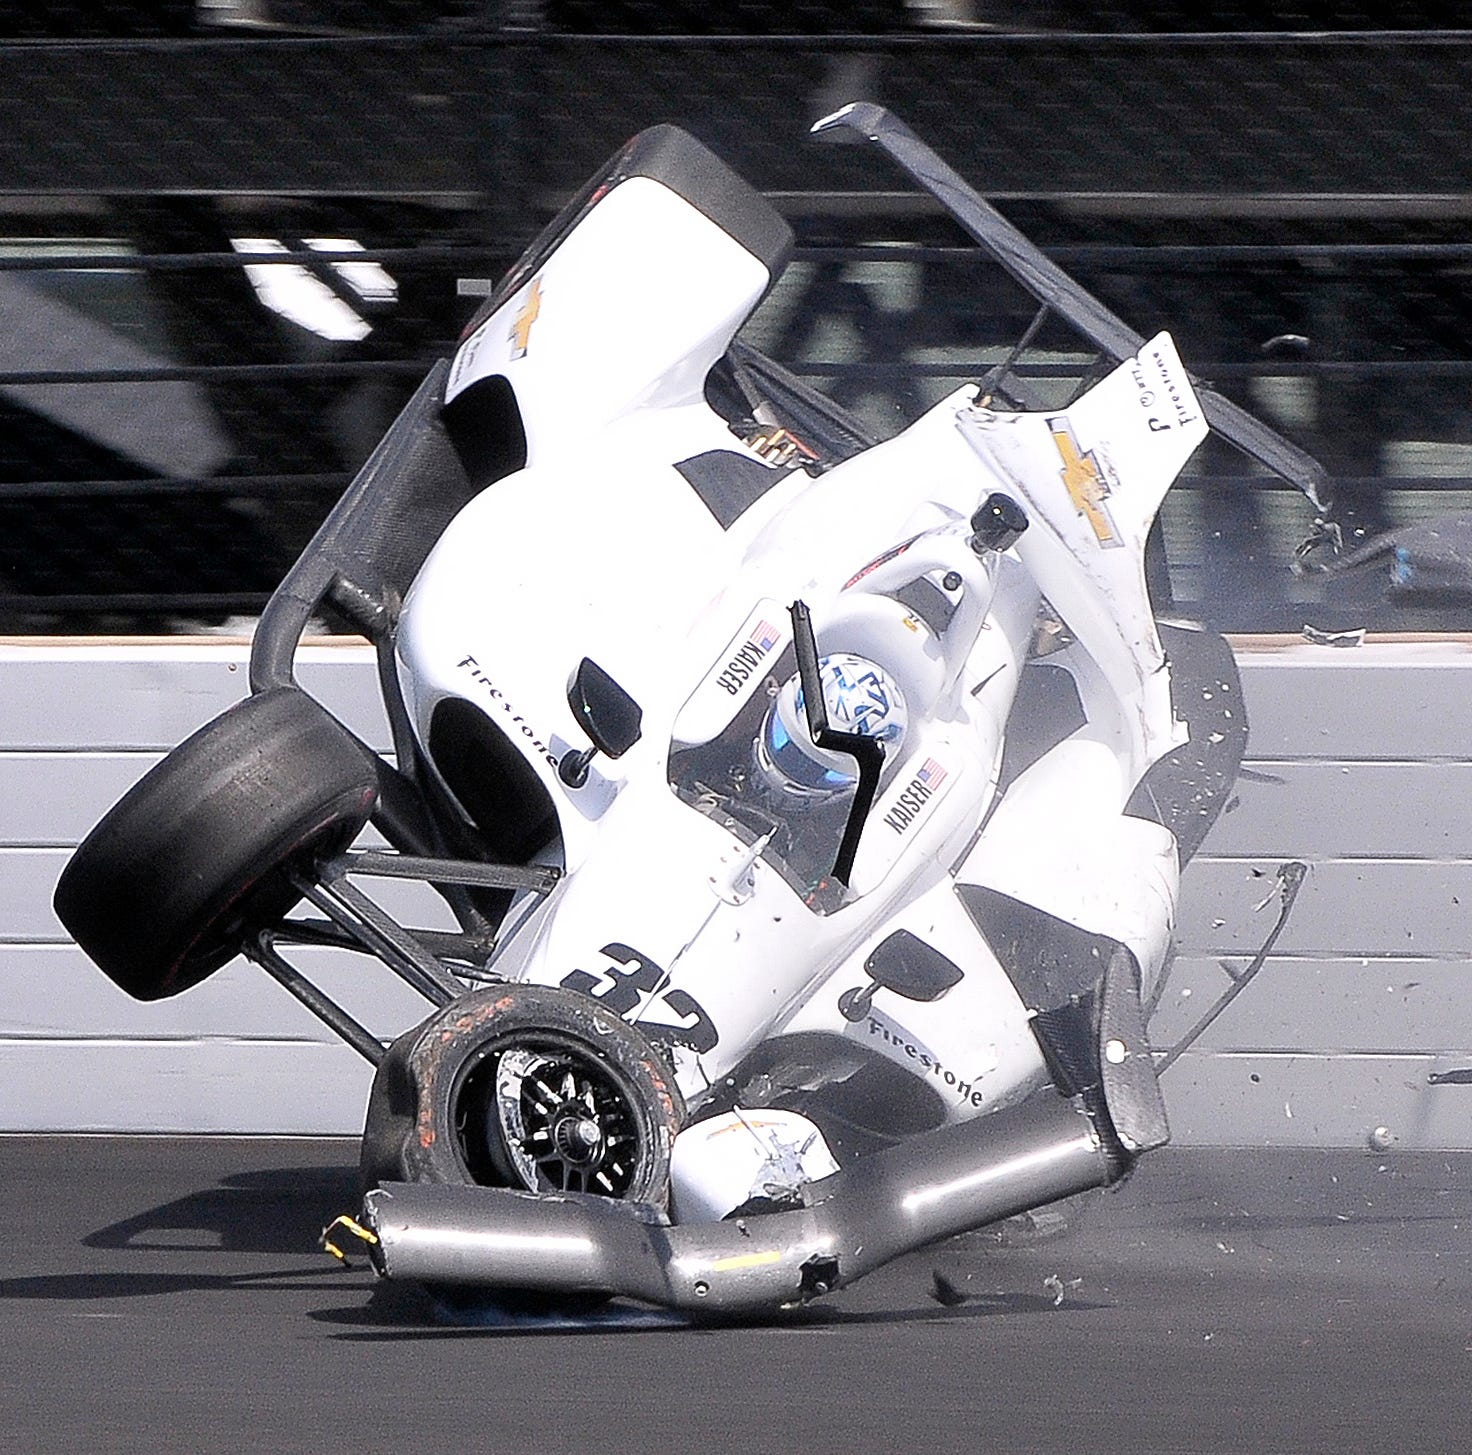 Juncos Racing scrambling after crash, Alonso among slowest no-tow speeds at Indy 500